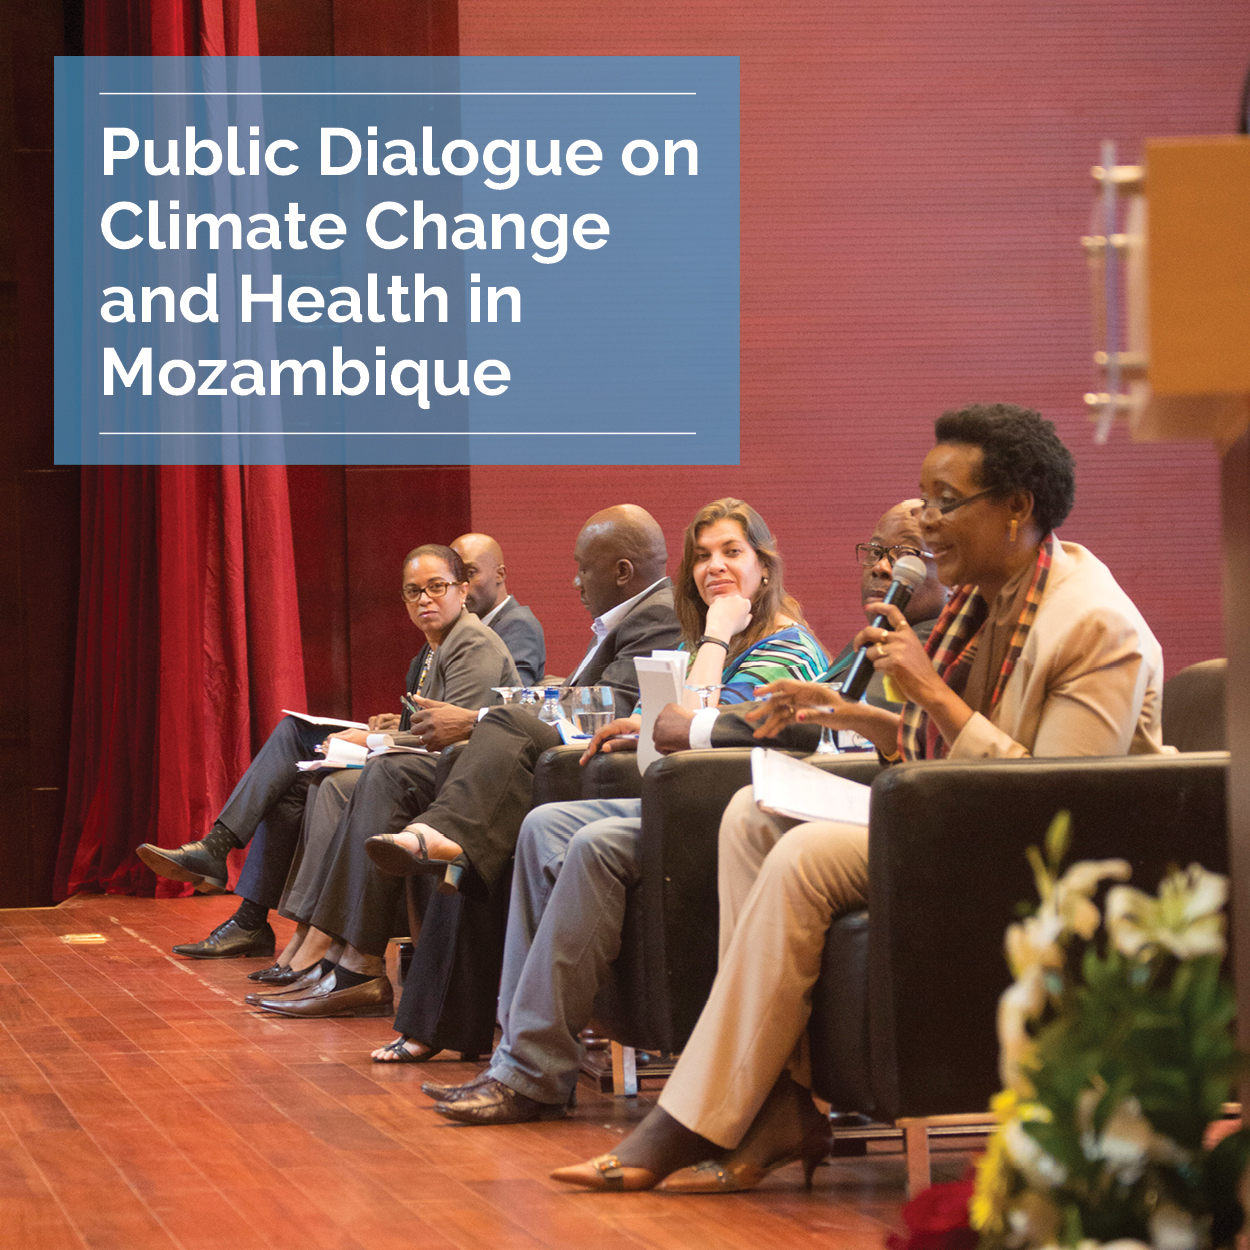 Clim-HEALTH Africa | Mozambique Country Page